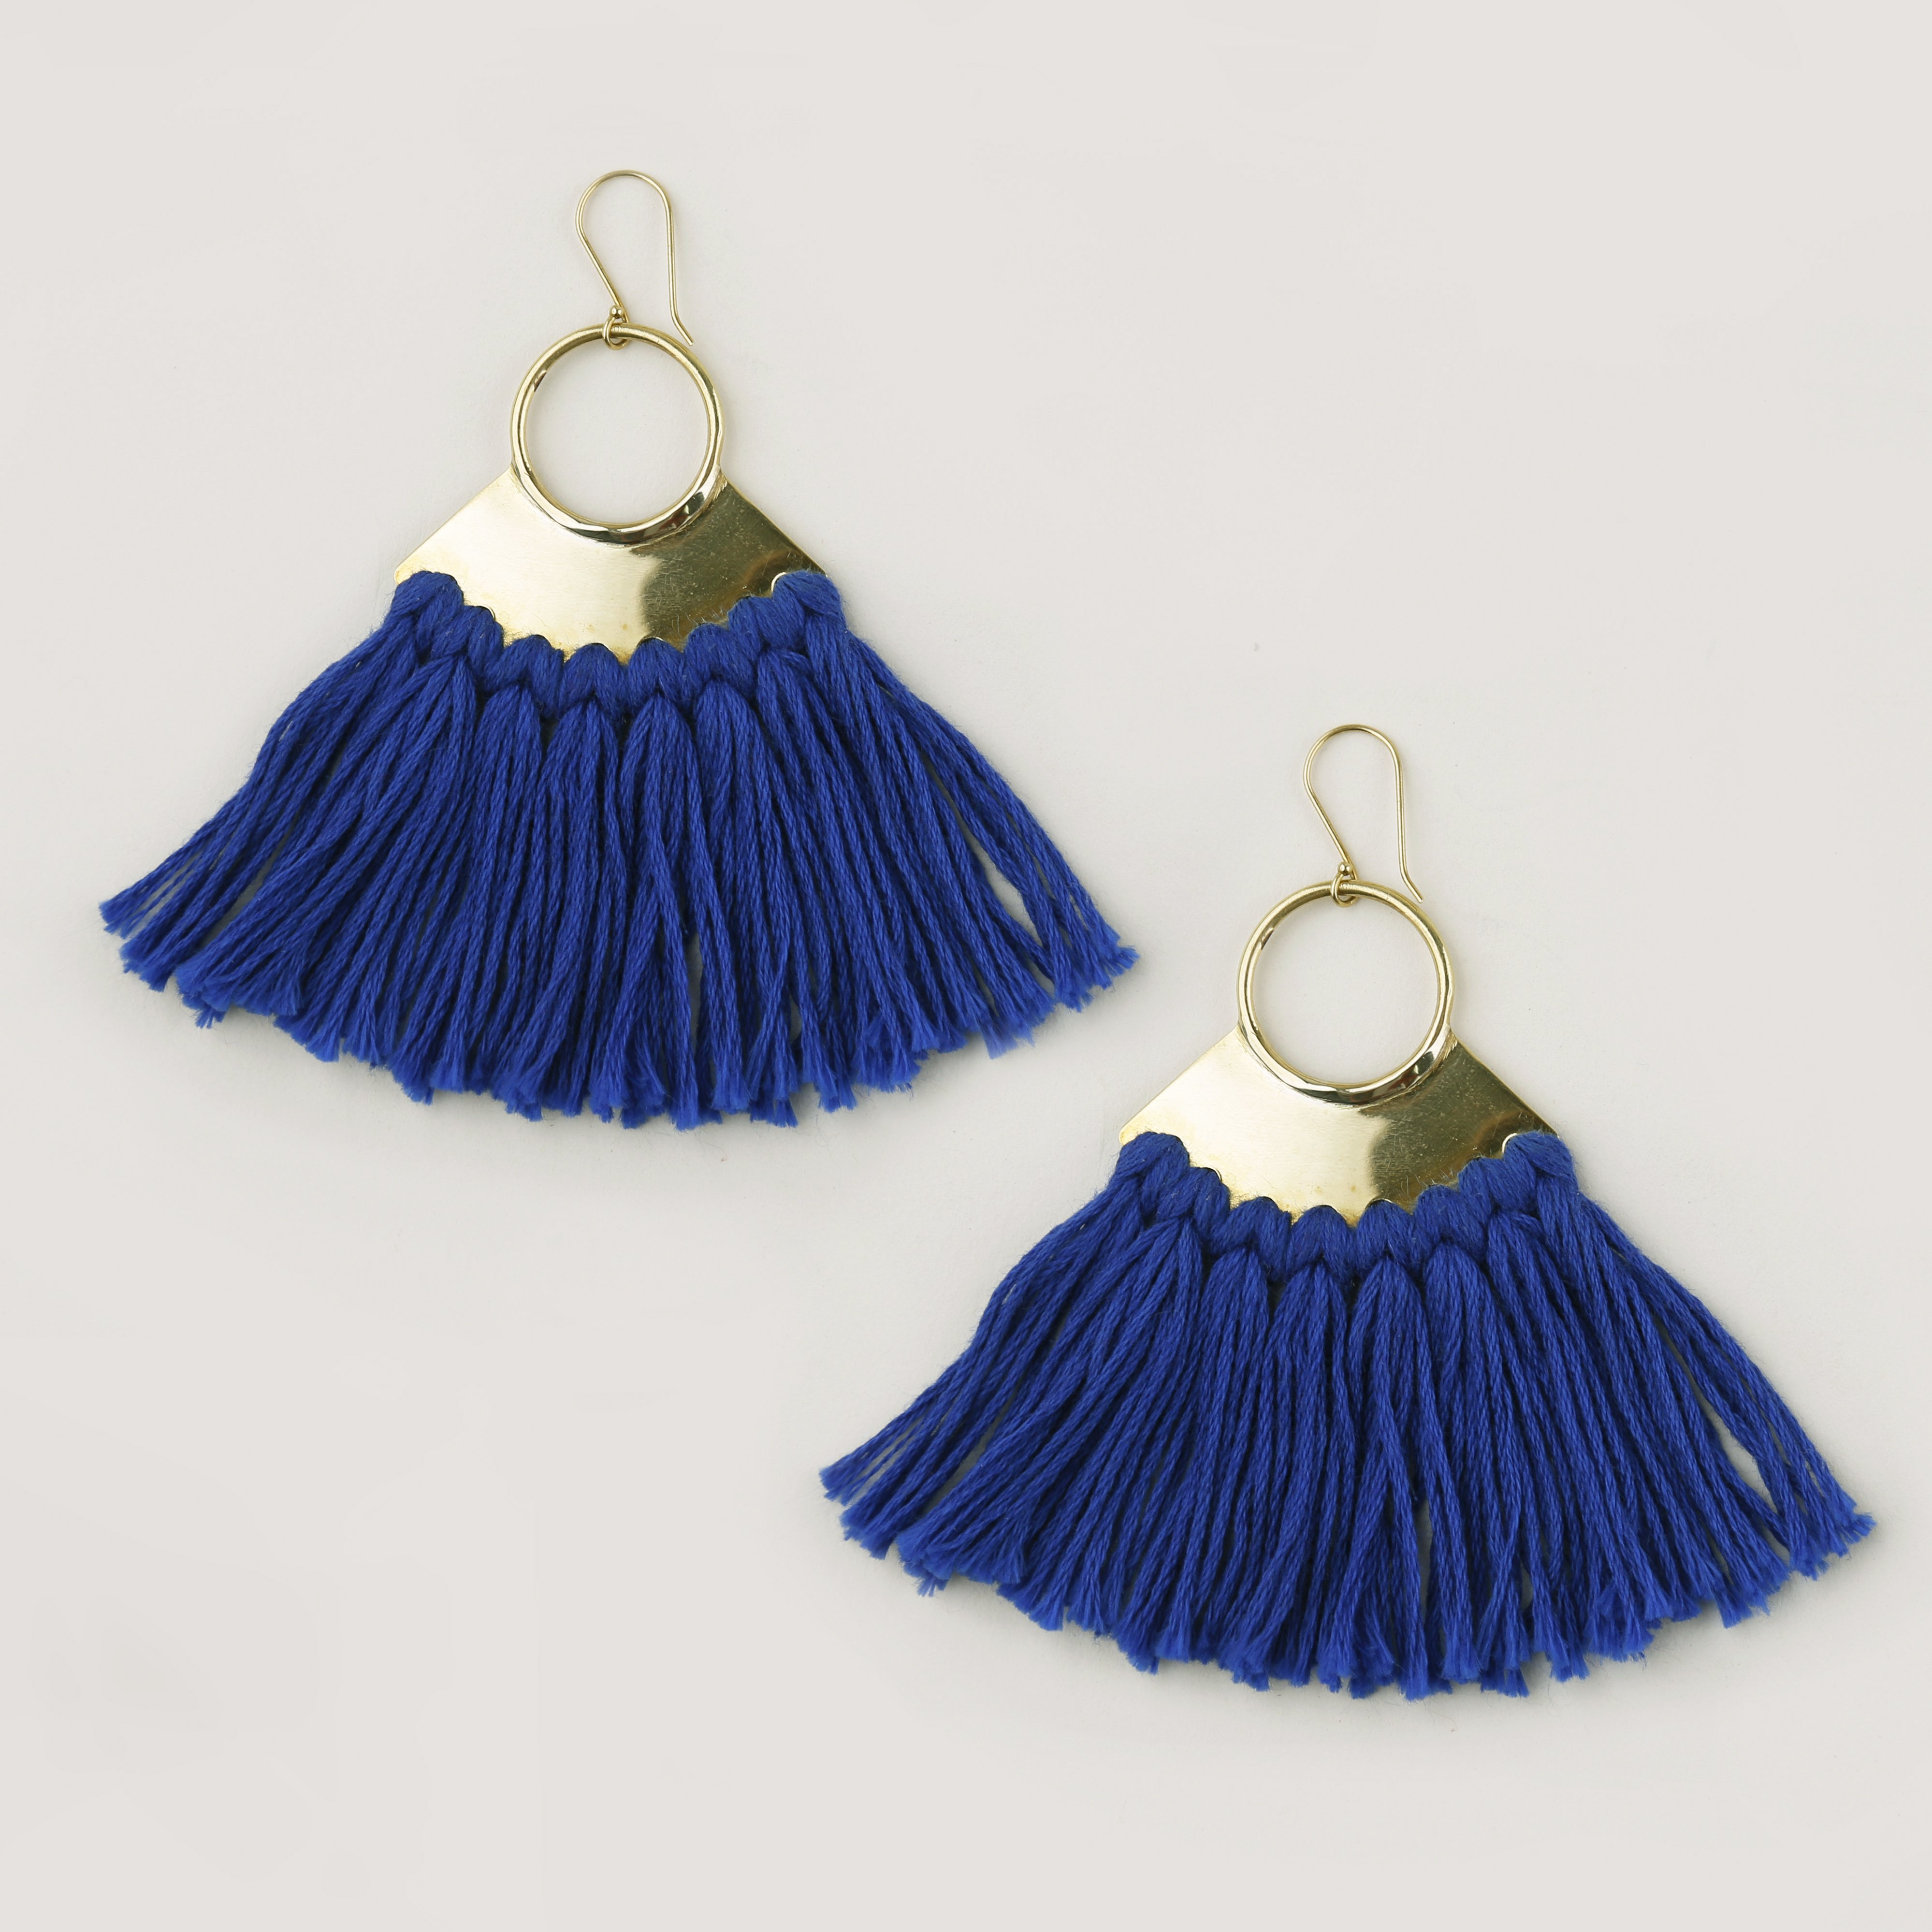 new arrivals zoe tassel tassle shop brenna rachel earrings